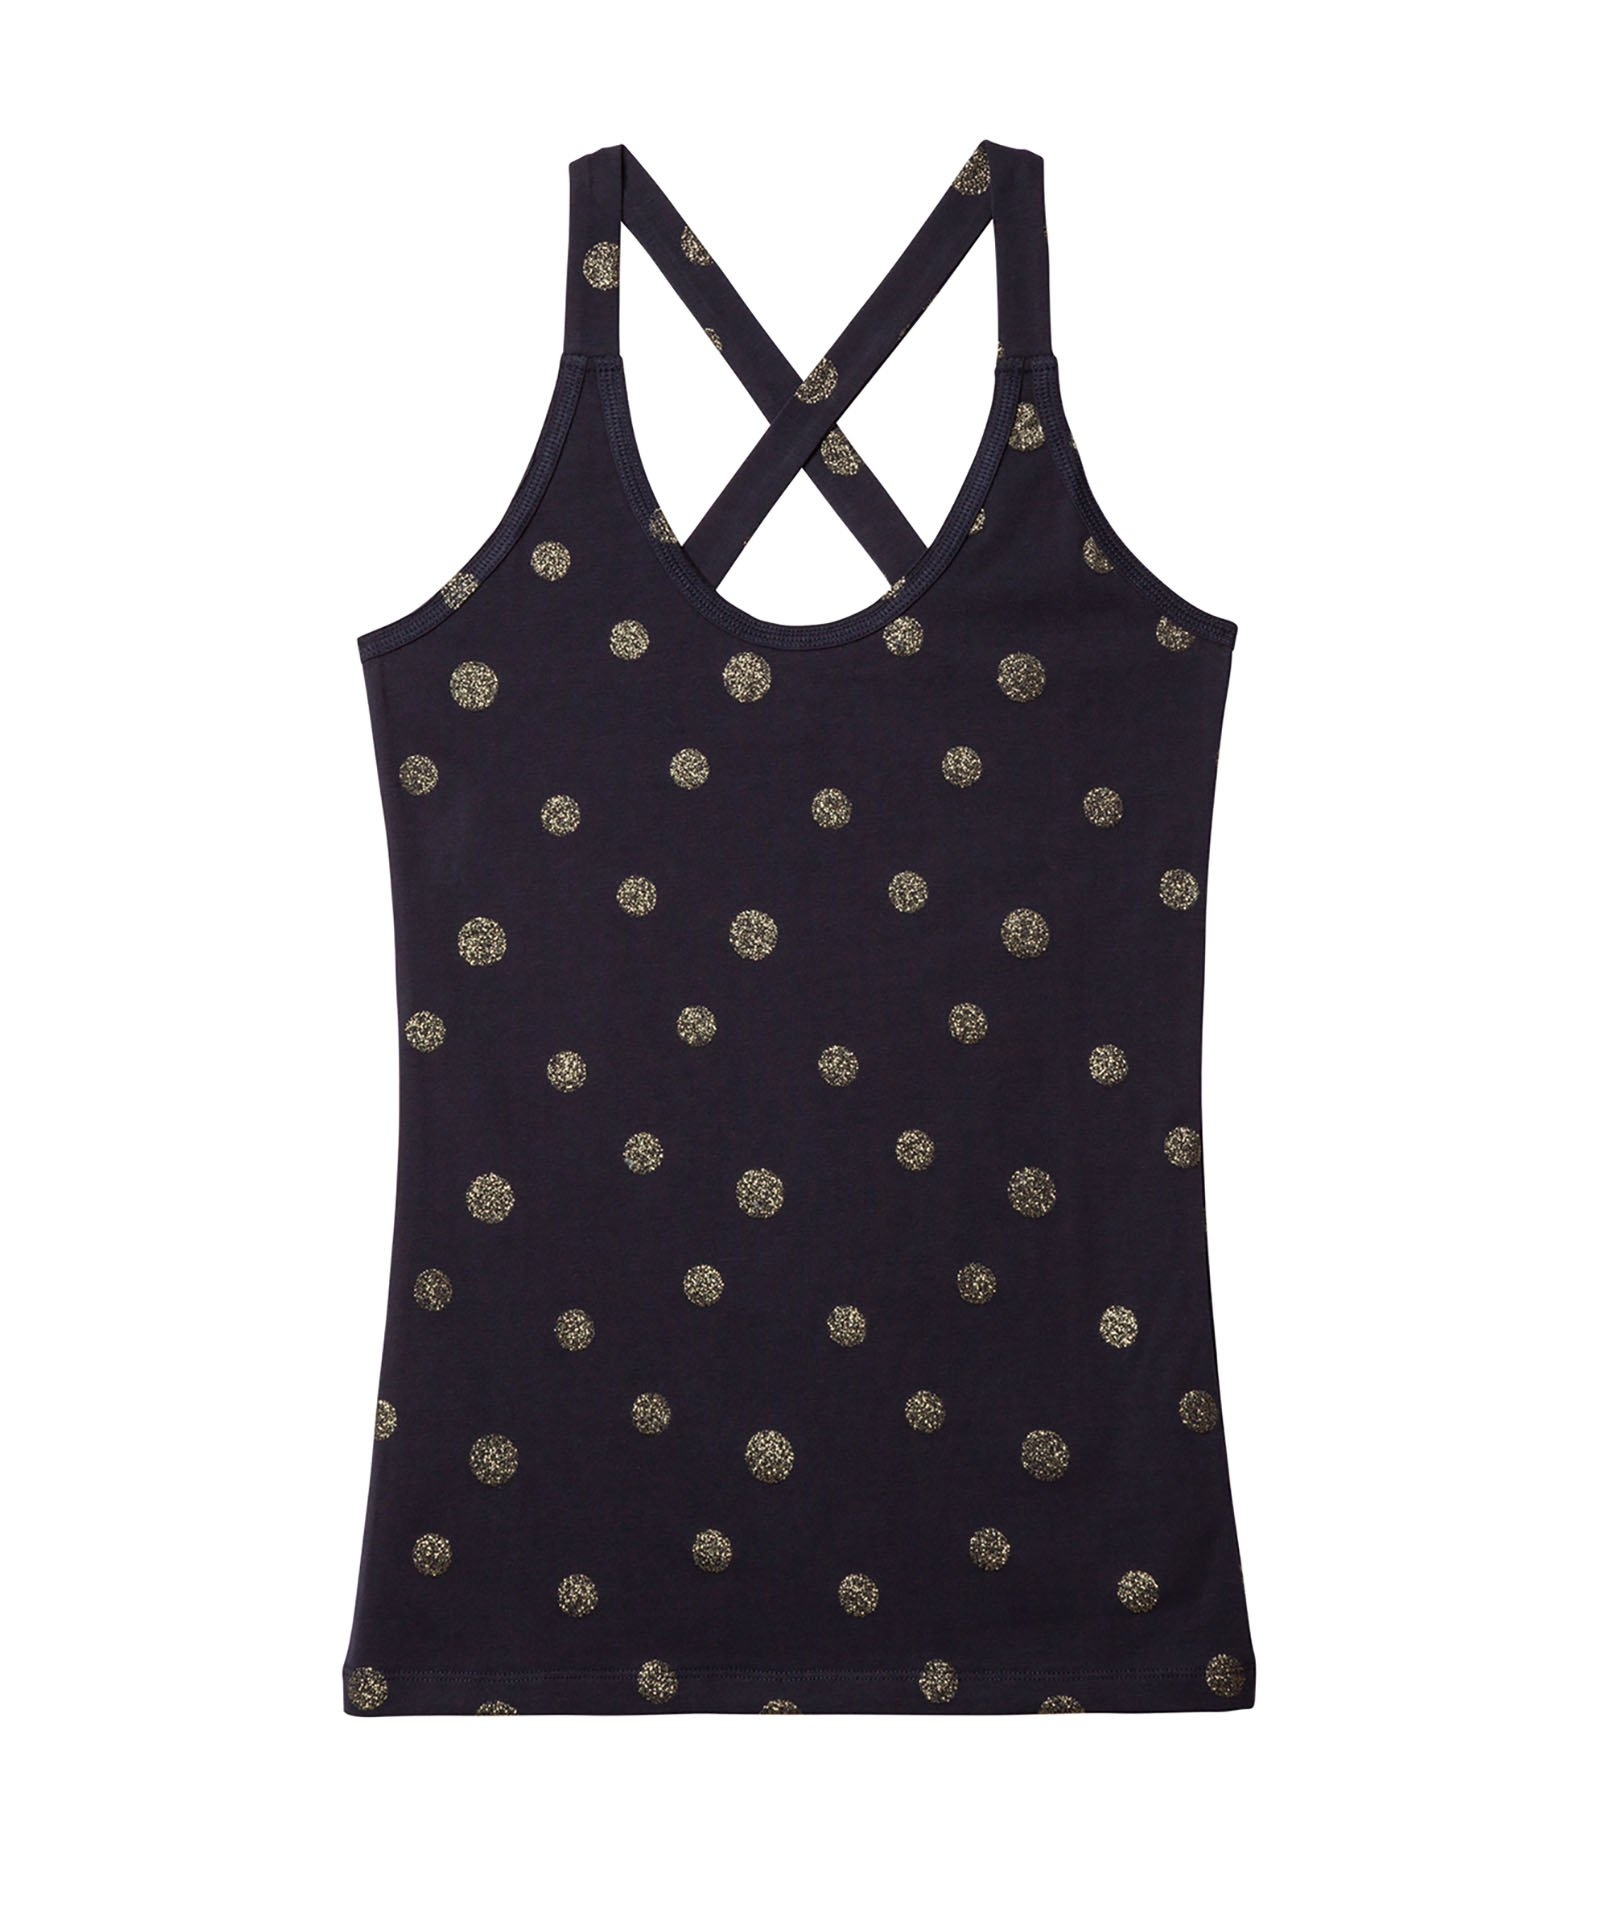 10Days donkerblauwe Iconic wrapper top golden dot